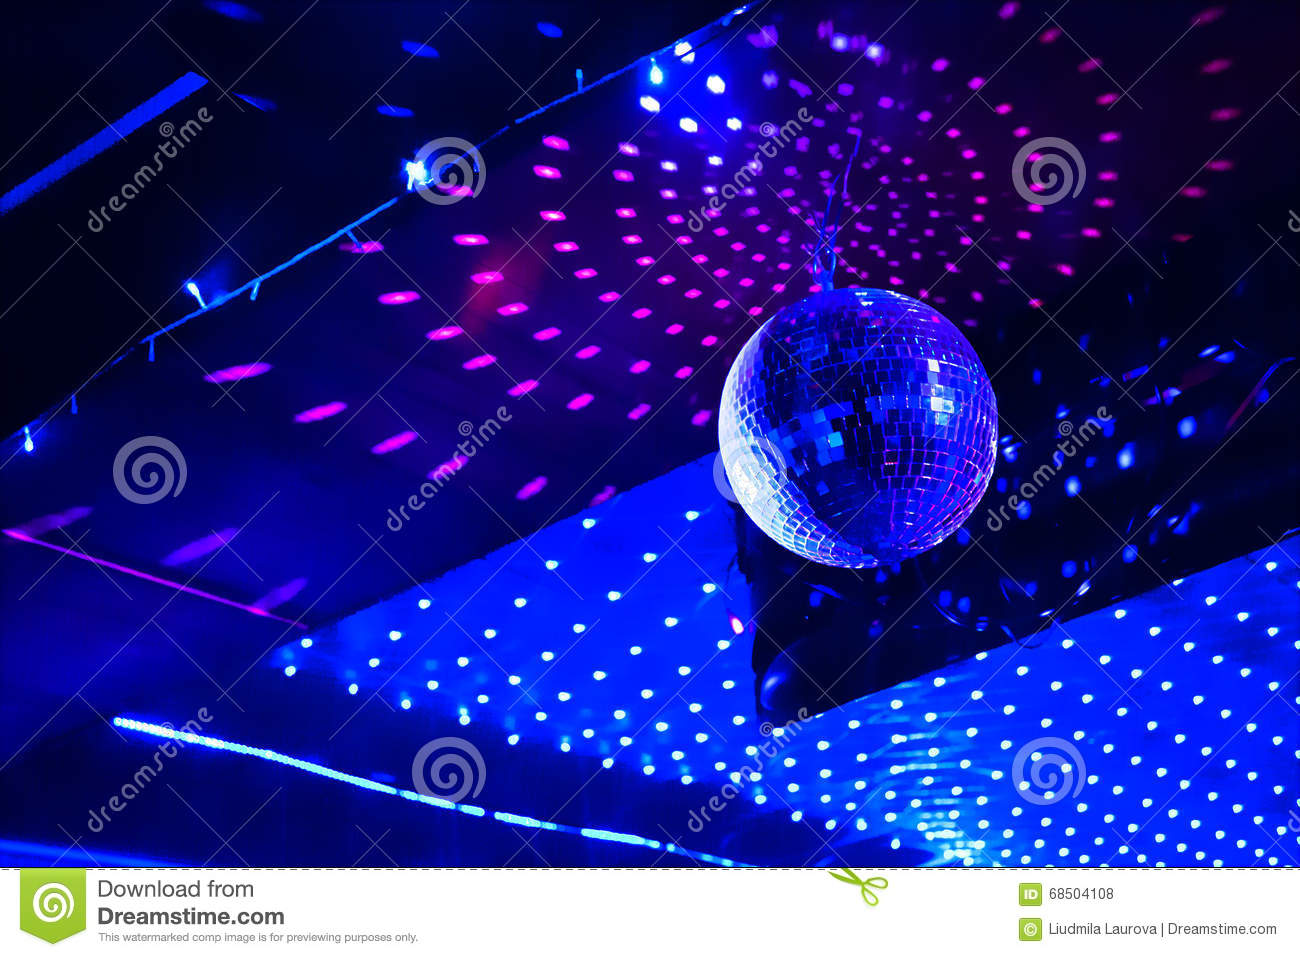 Mirror disco ball with light reflection on the ceiling stock photo download mirror disco ball with light reflection on the ceiling stock photo image of light aloadofball Choice Image